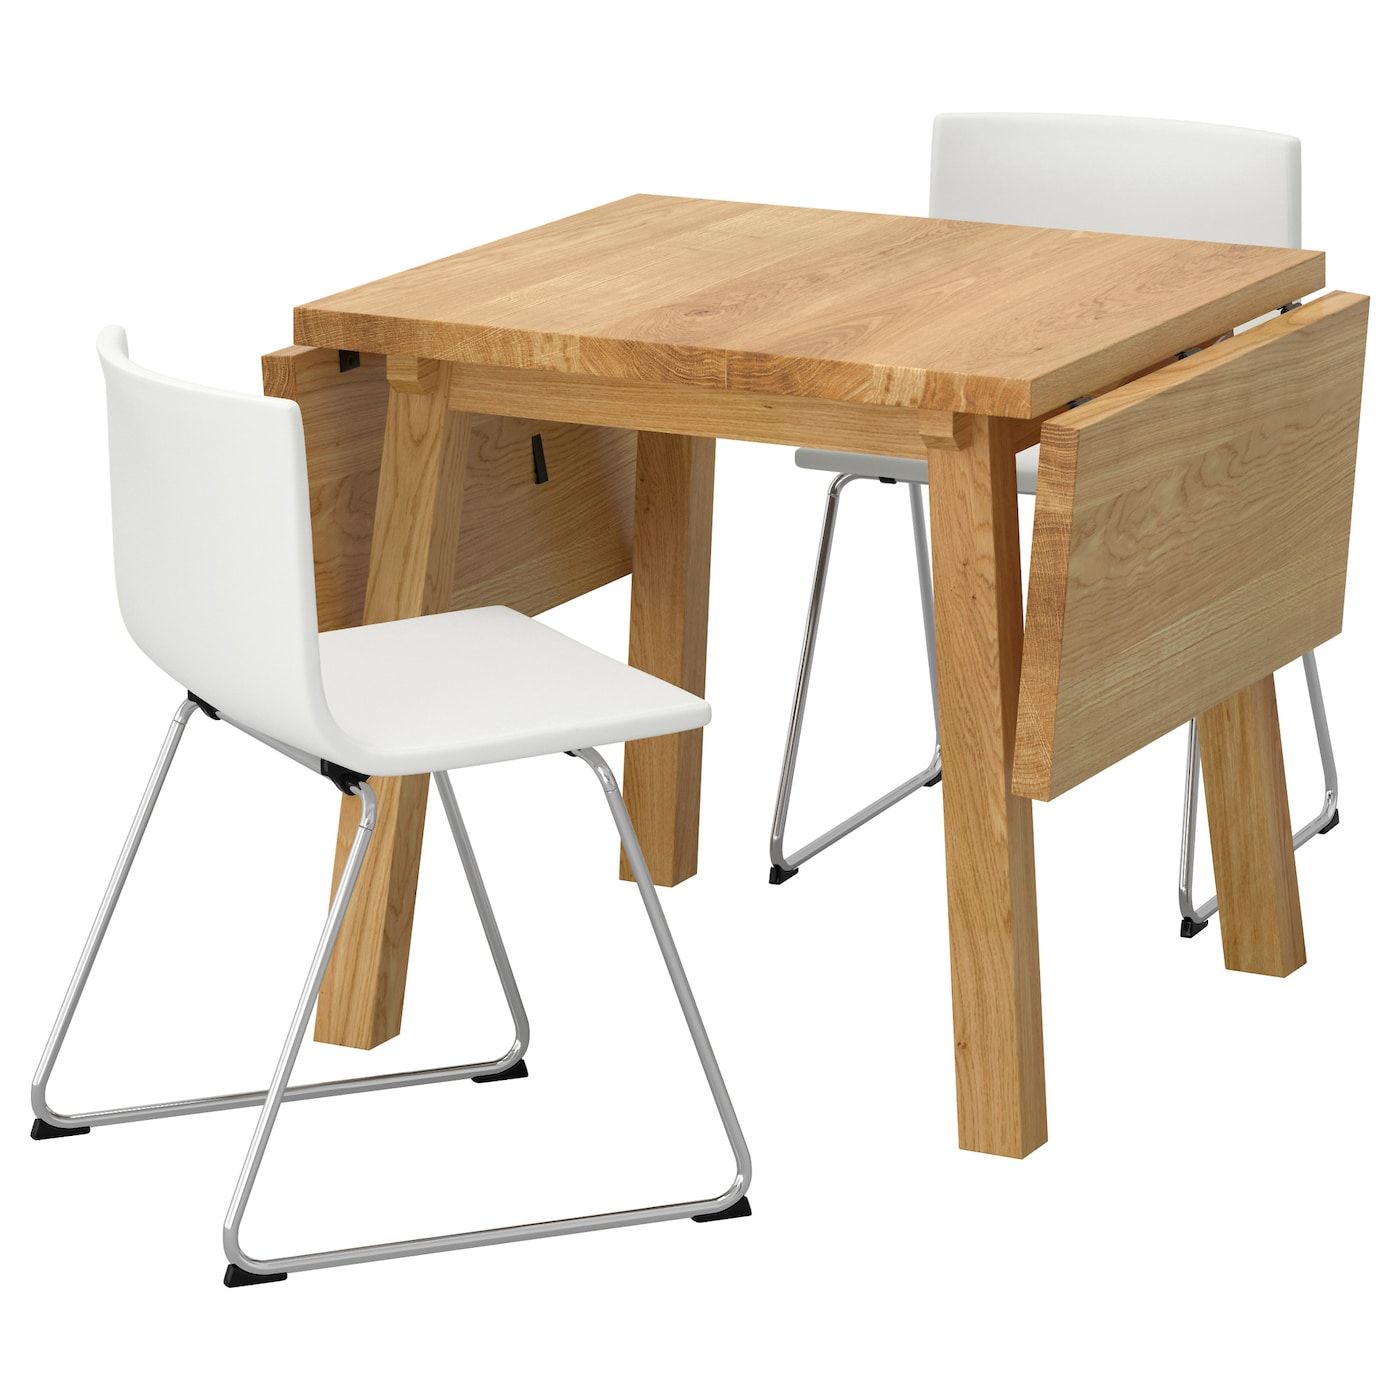 Bernhard m ckelby table and 2 chairs oak white 79 cm ikea for Table 6 personnes ikea